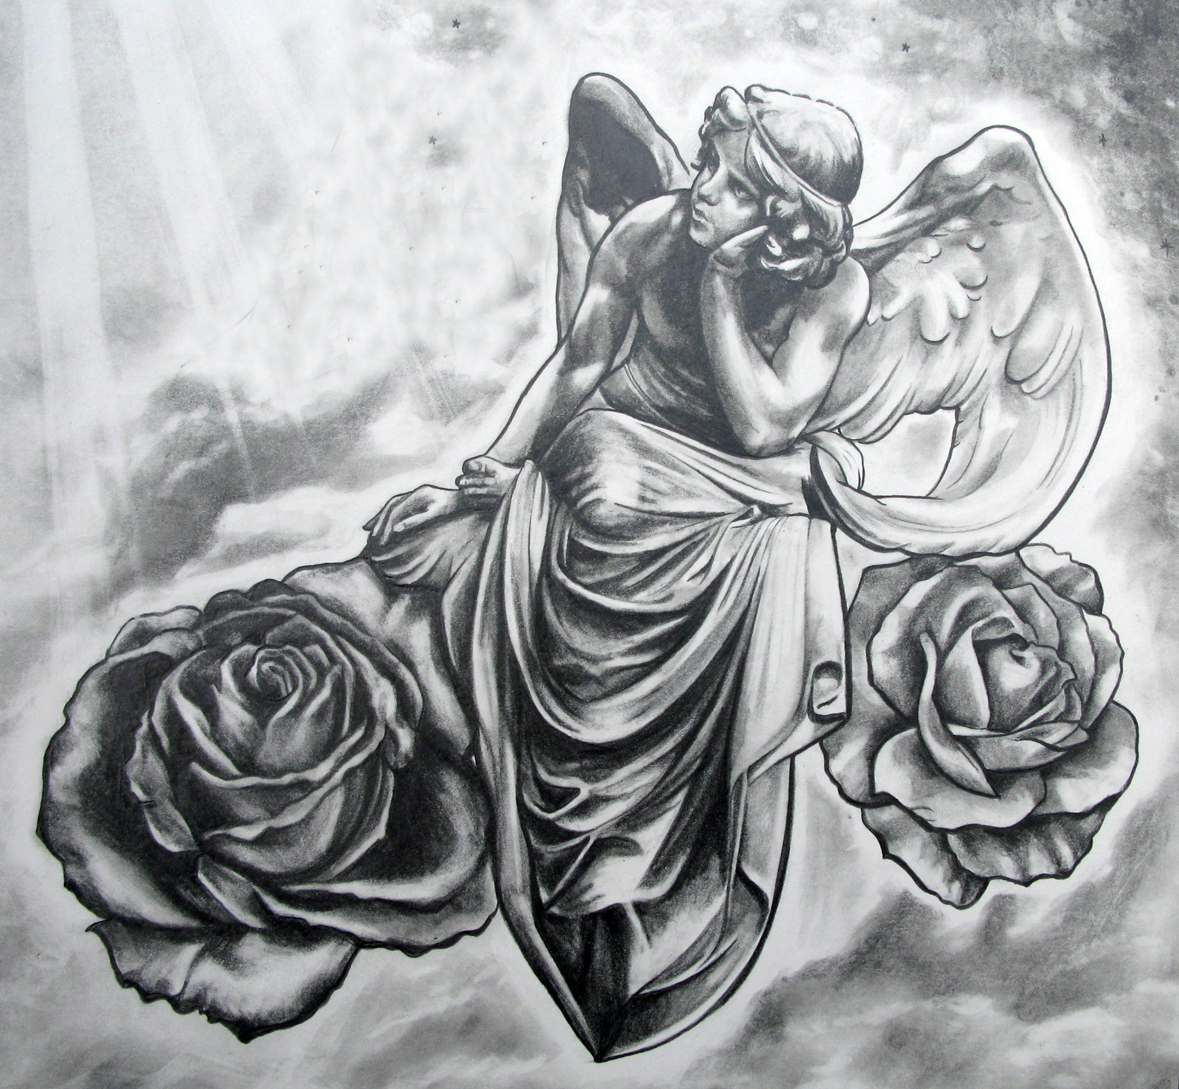 Tattoos Pictures Gallery | Tattoos Idea |Tattoos Images